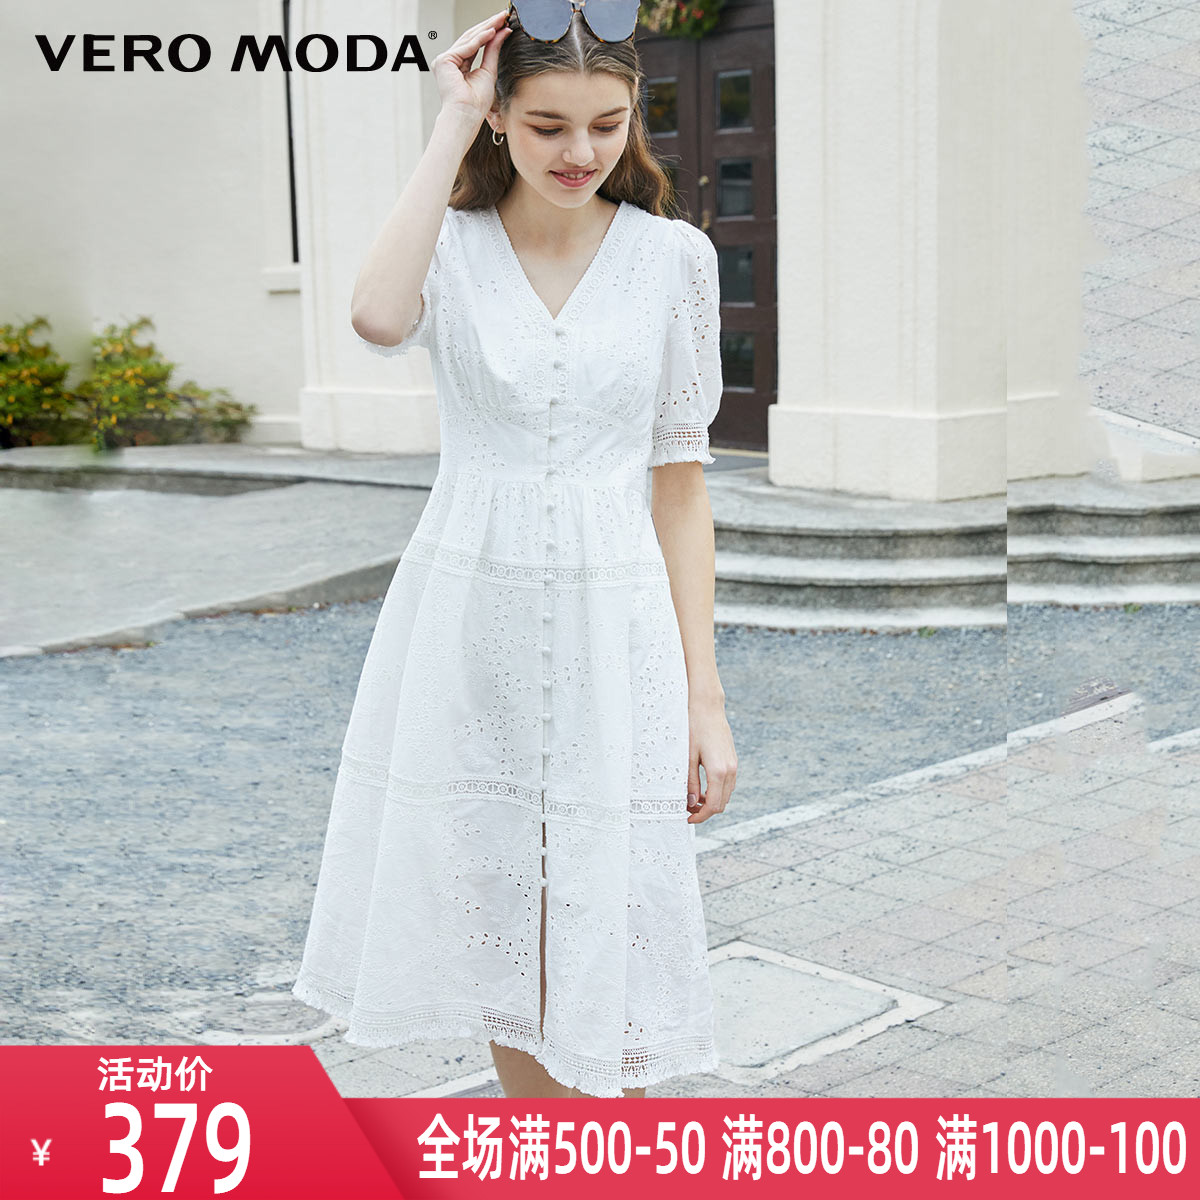 Vero moda2020 spring and summer new pure cotton V-neck waist show thin embroidery French dress 32017b514